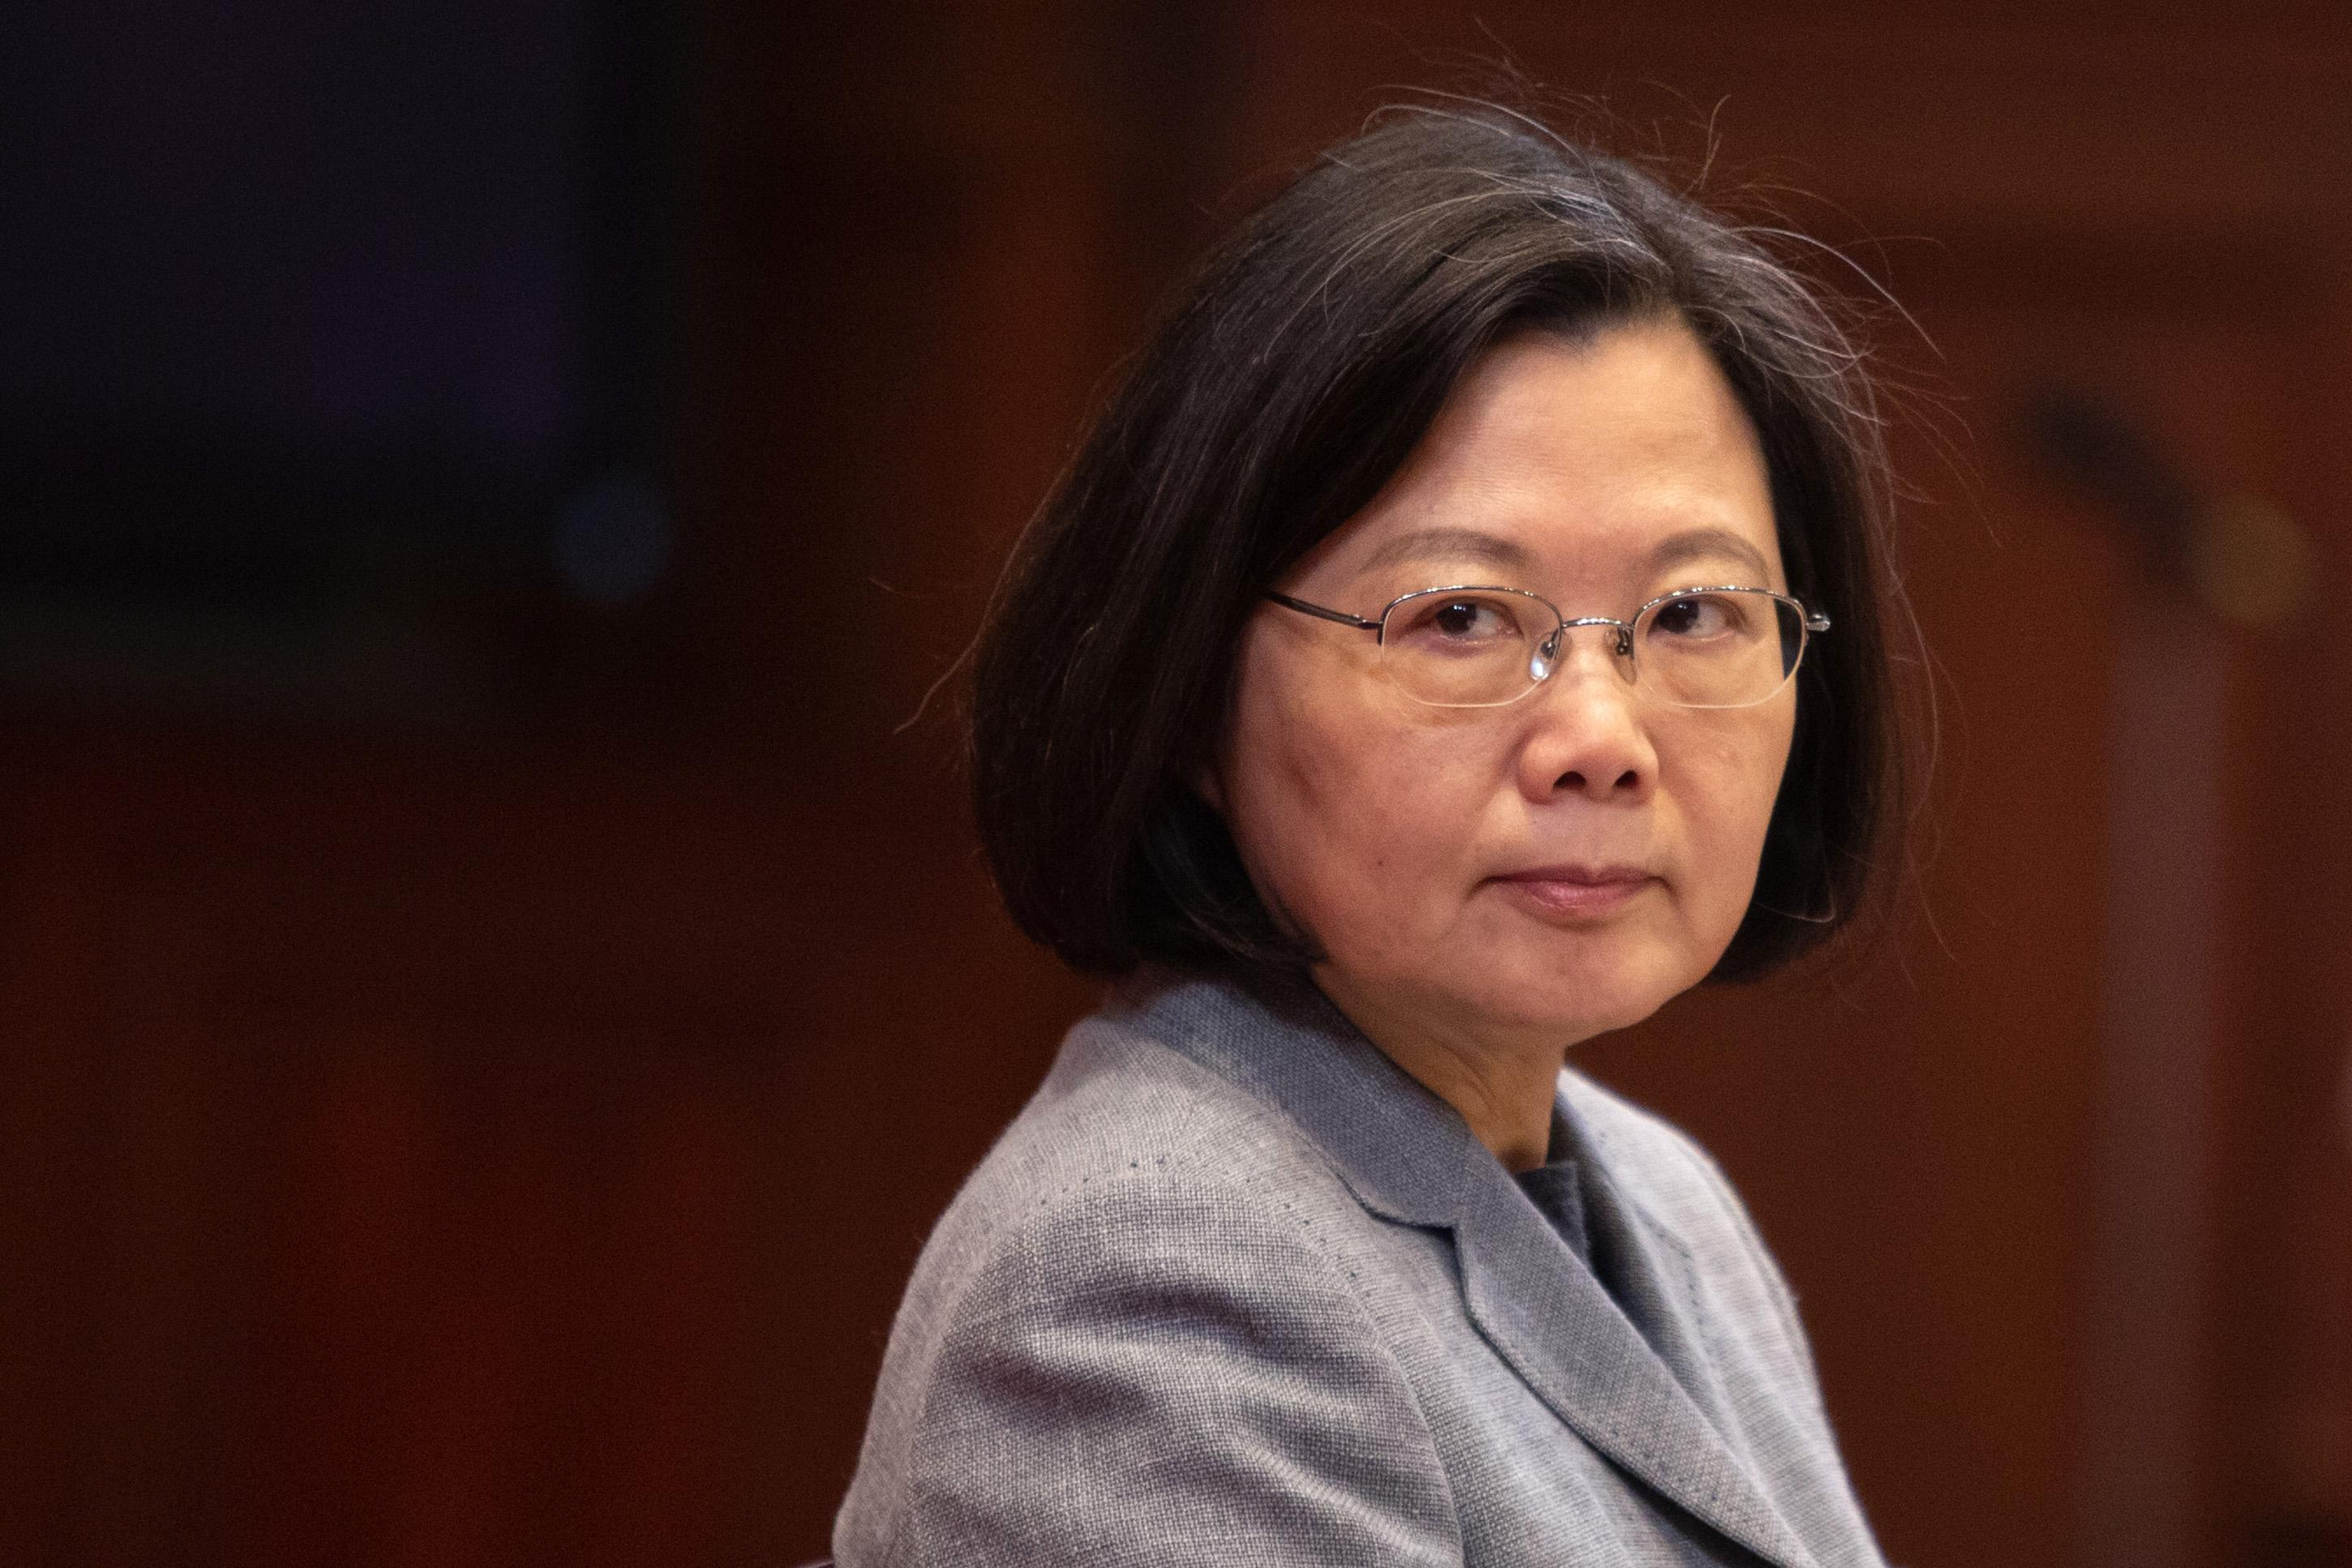 QnA VBage Taiwan Lays Down Historic Marker for Same-Sex Marriage in Asia